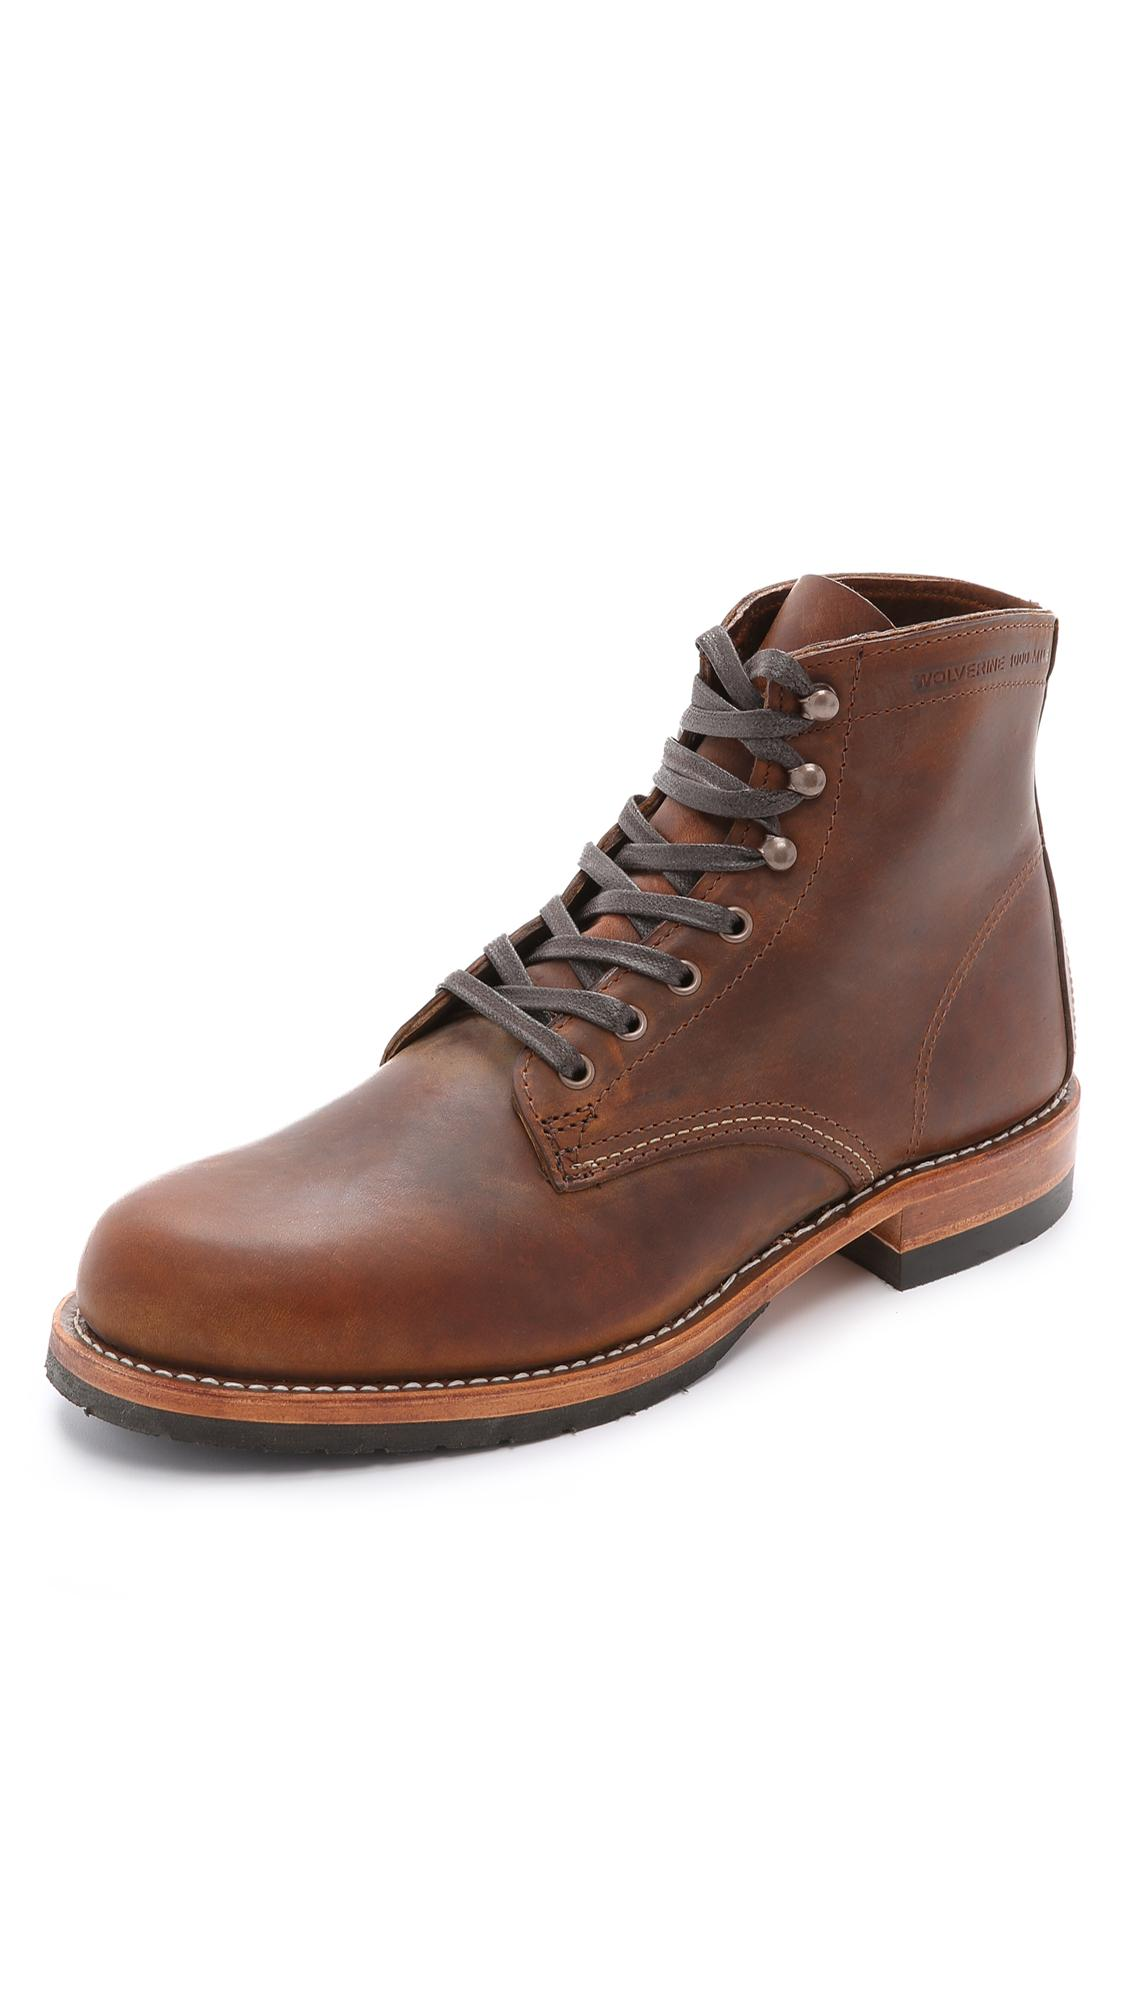 0e1c206783d Evans Boots in Brown